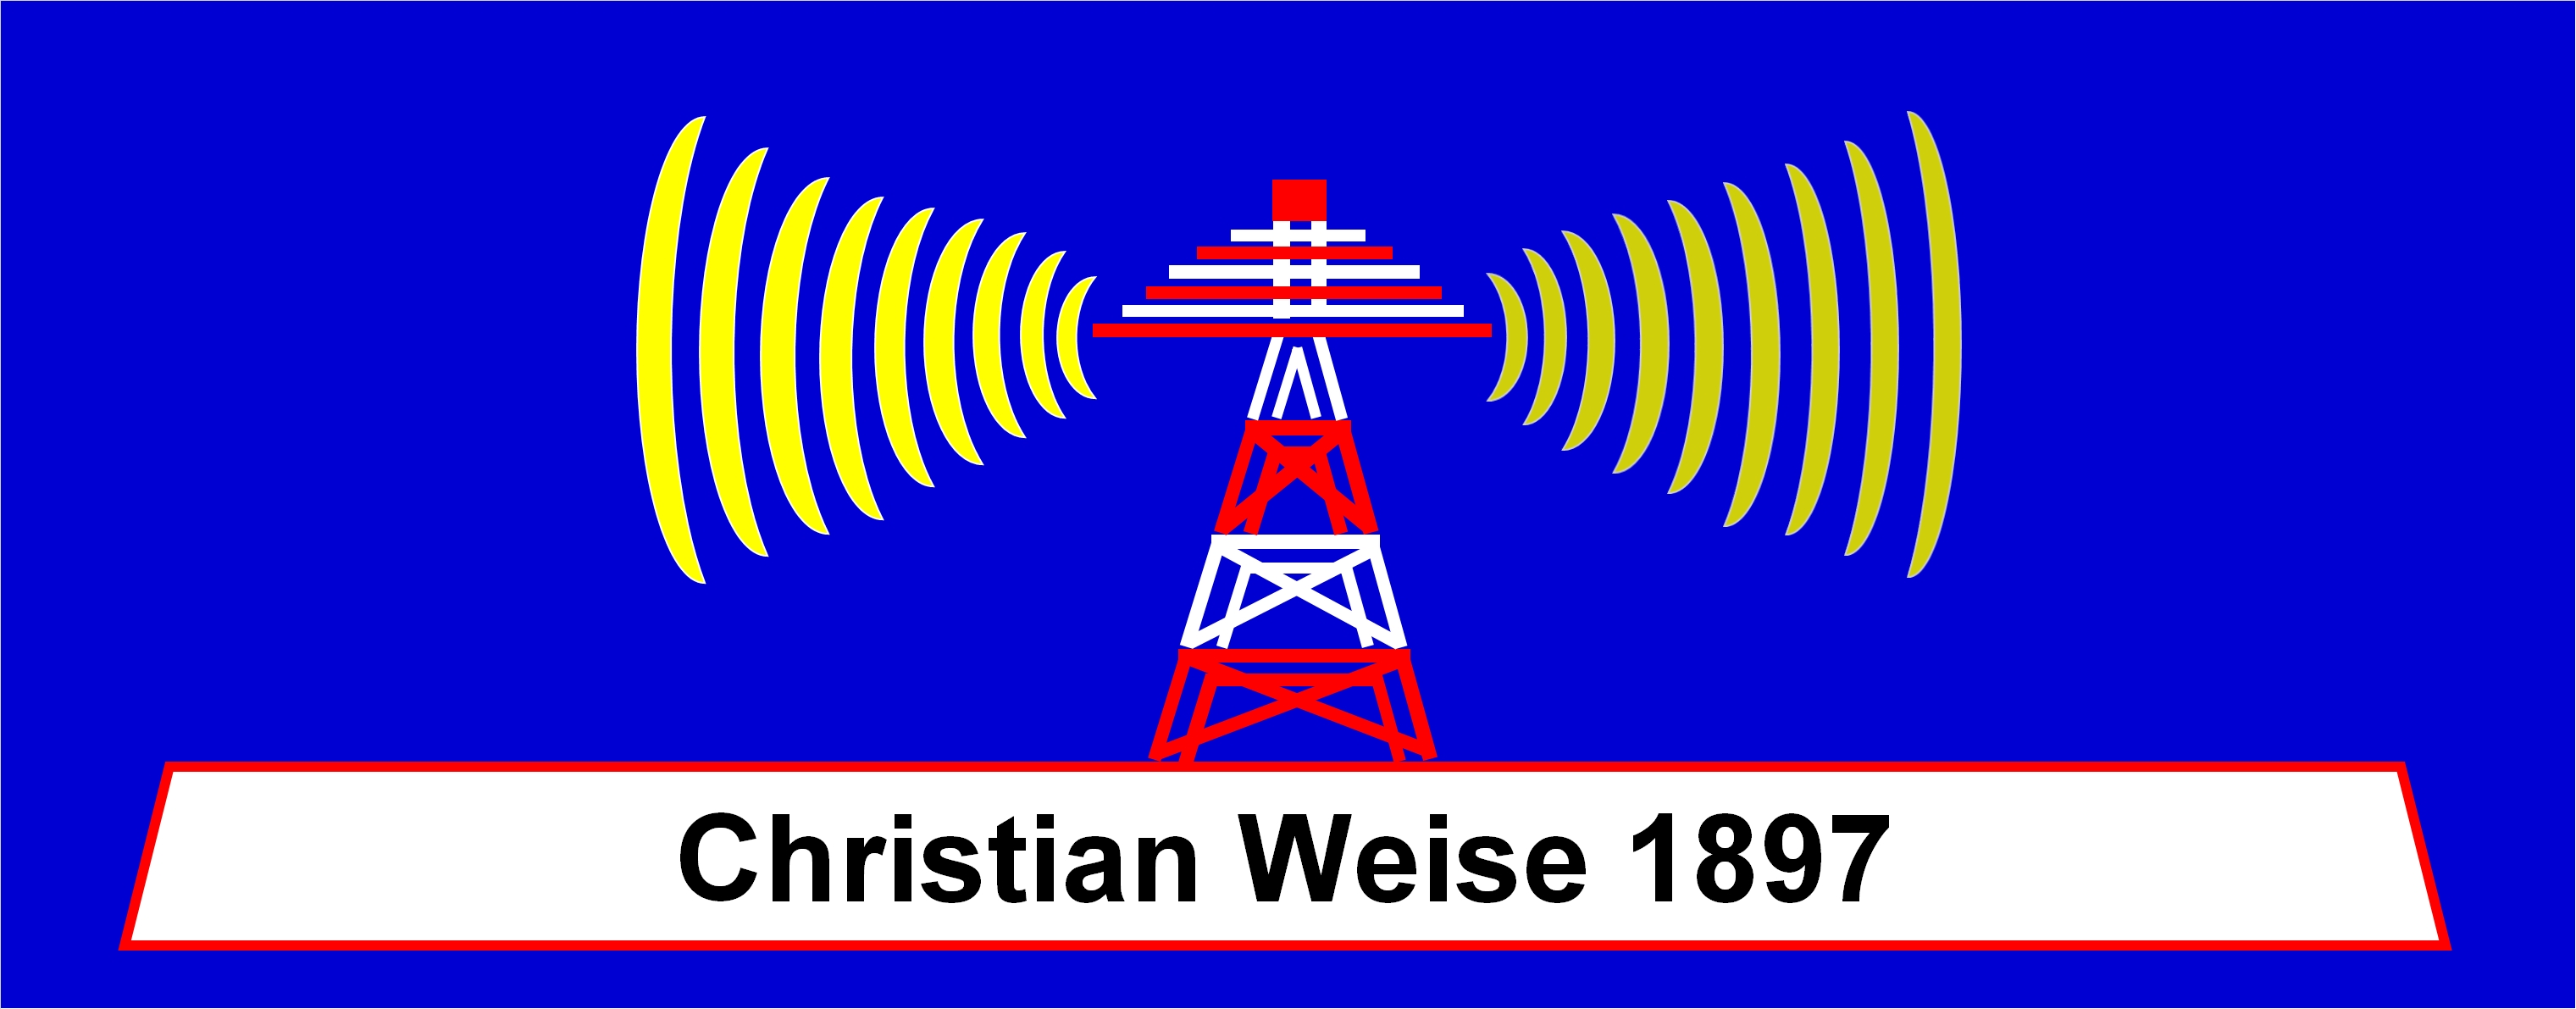 Christian Weise 1897